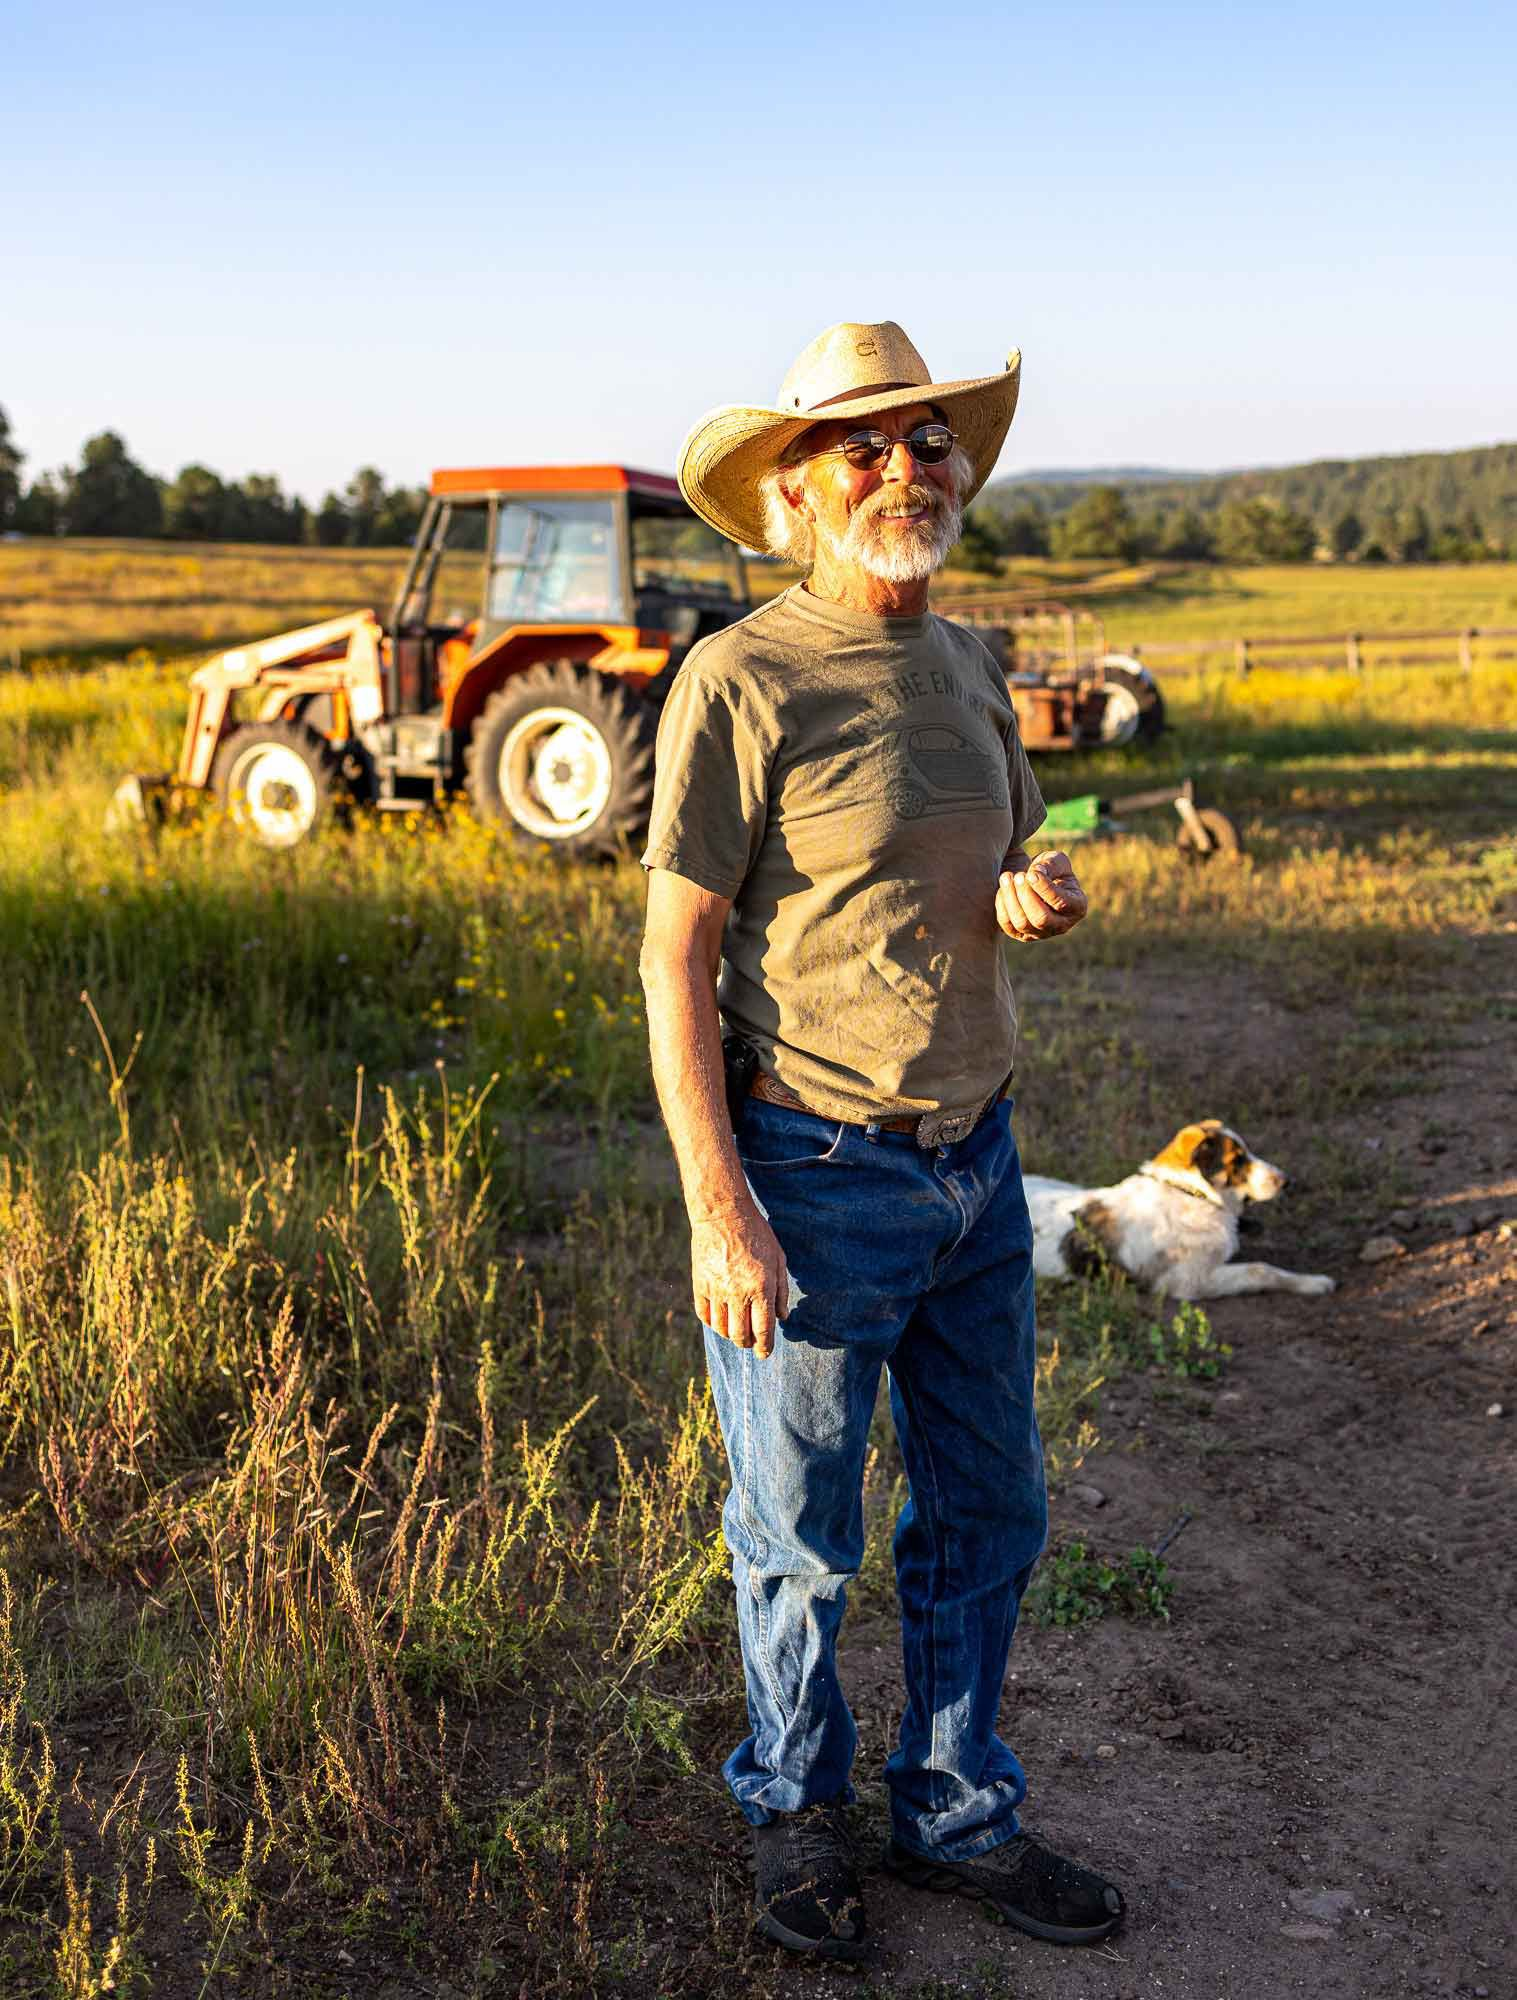 With an easy smile, laid-back demeanor, and encyclopedic knowledge of his home range, Preston Bates is a tour guide nonpareil.